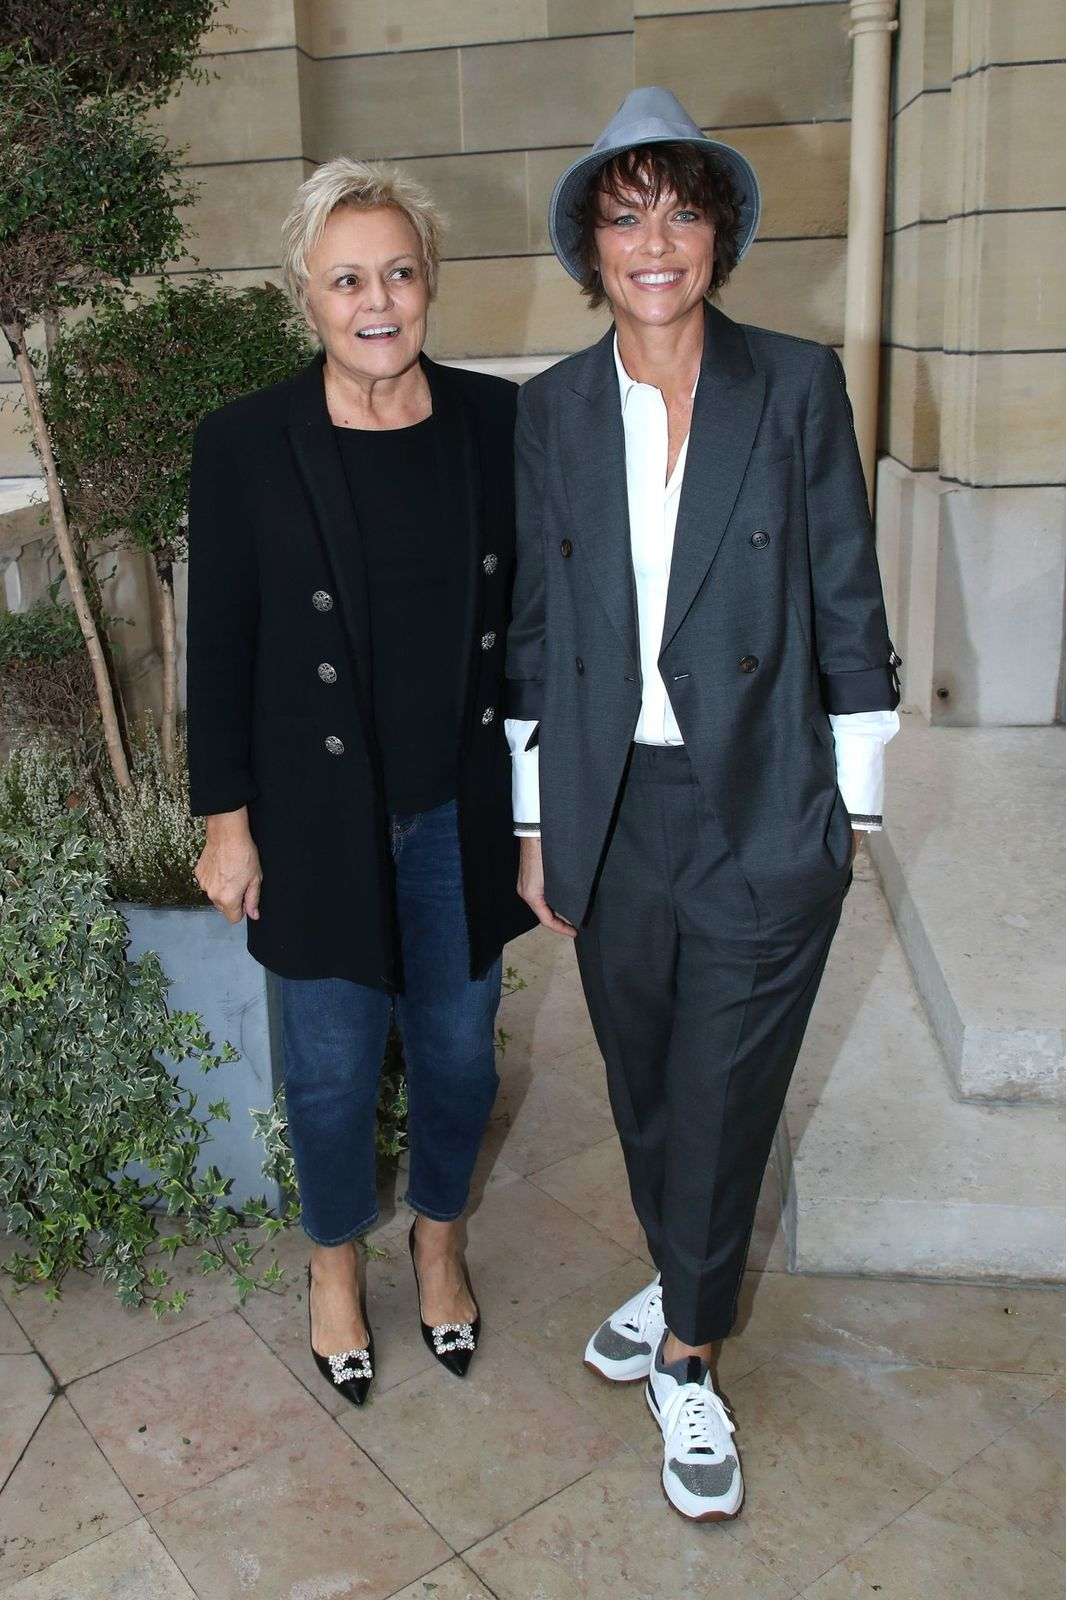 Muriel Robin et Anne Le Nen à la Maison de la Recherche le 25 octobre 2019 à Paris, France. | Photo : Getty Images